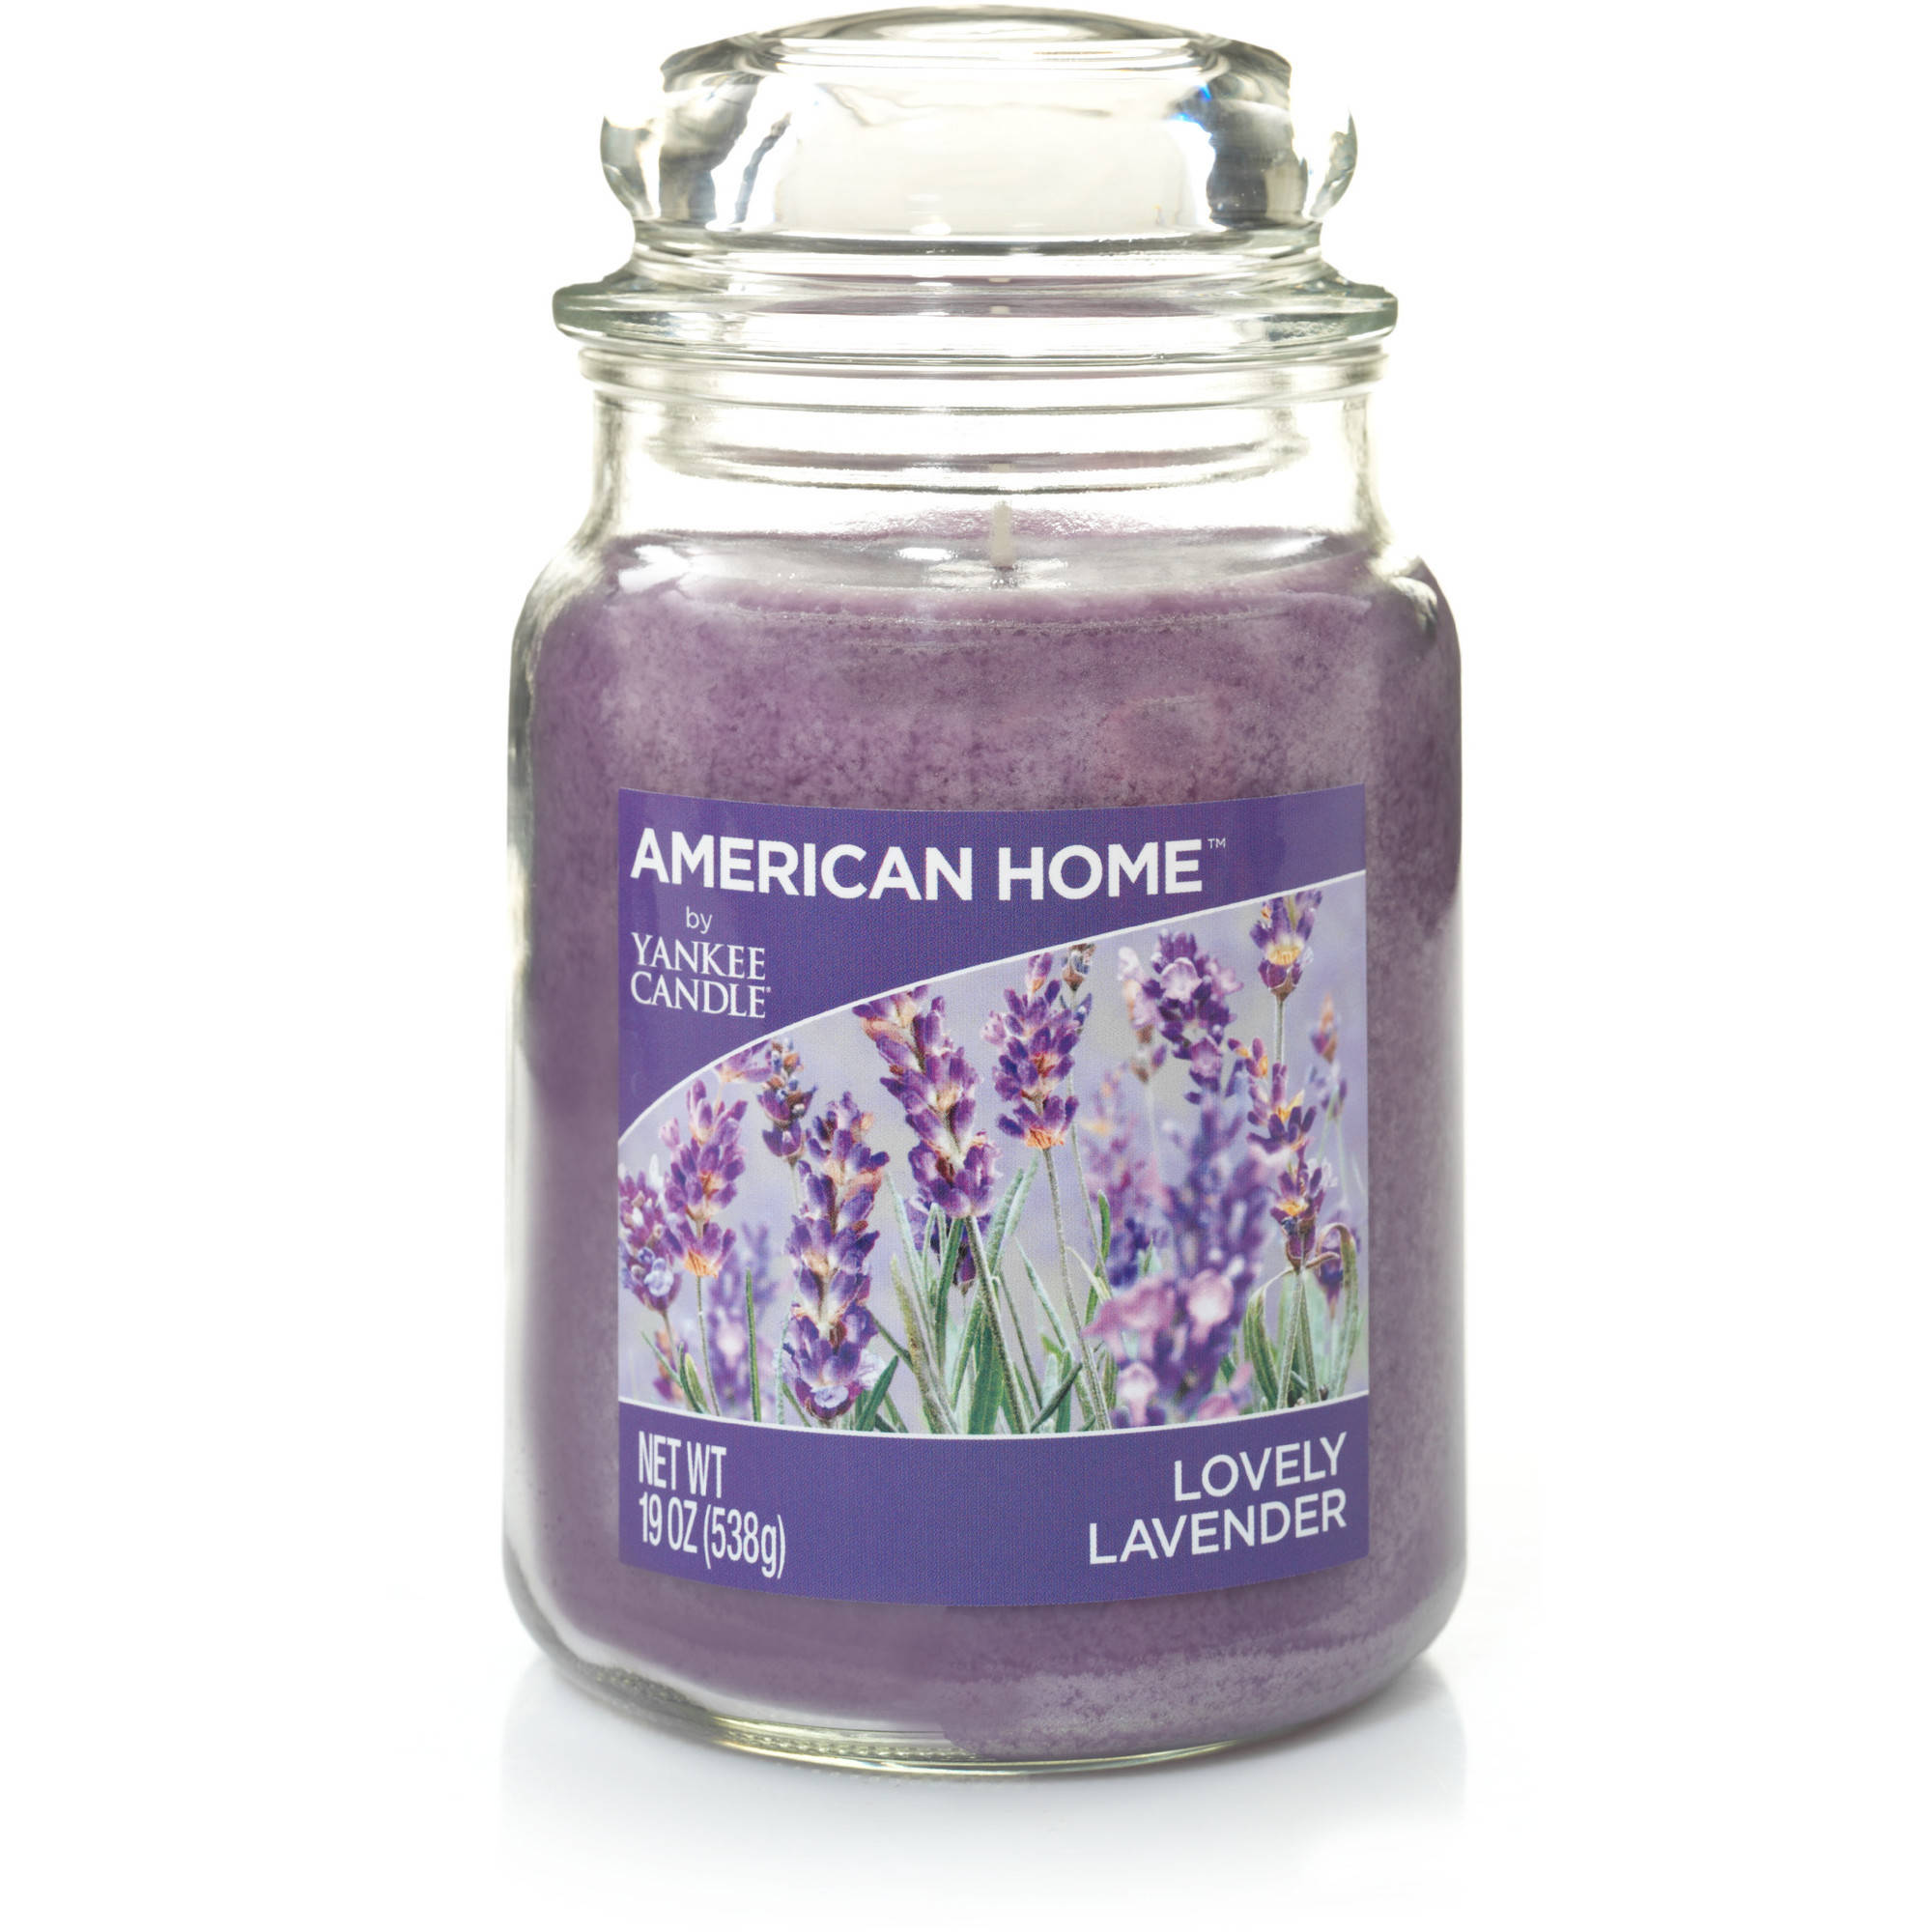 American Home by Yankee Candle Lovely Lavender, 19 oz Large Jar